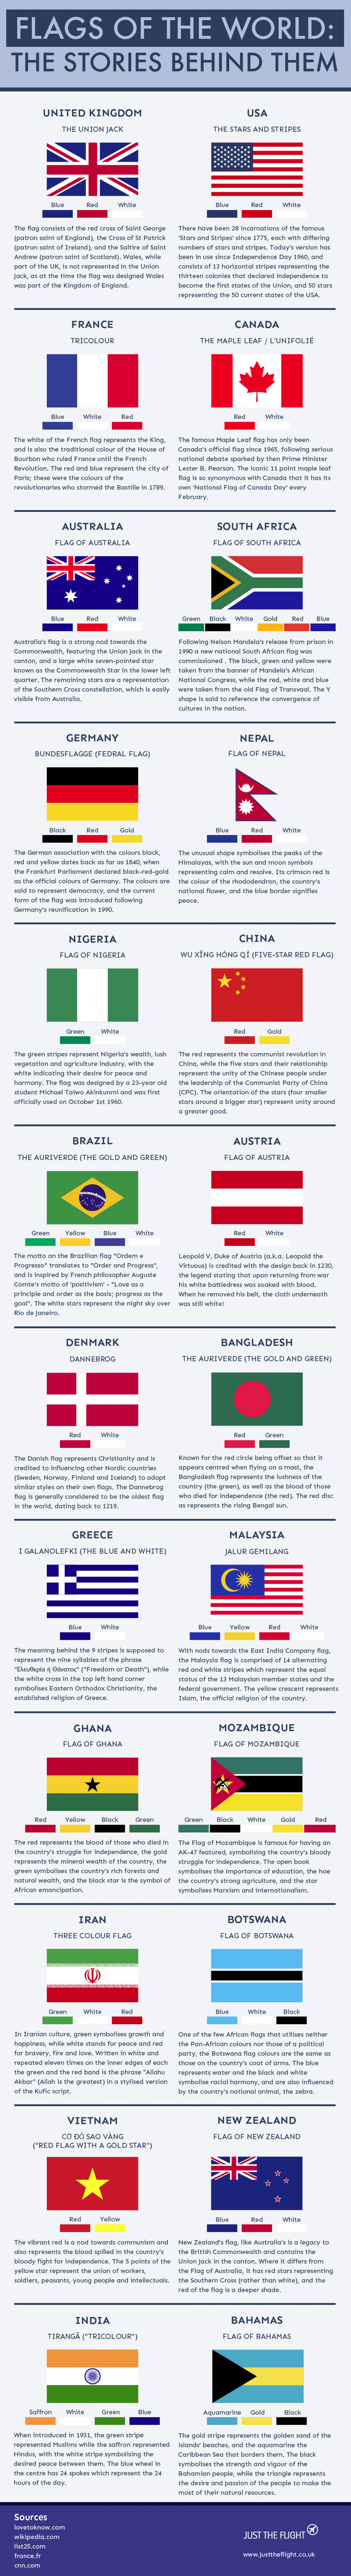 Flags of the World: The Stories Behind Them Infographic